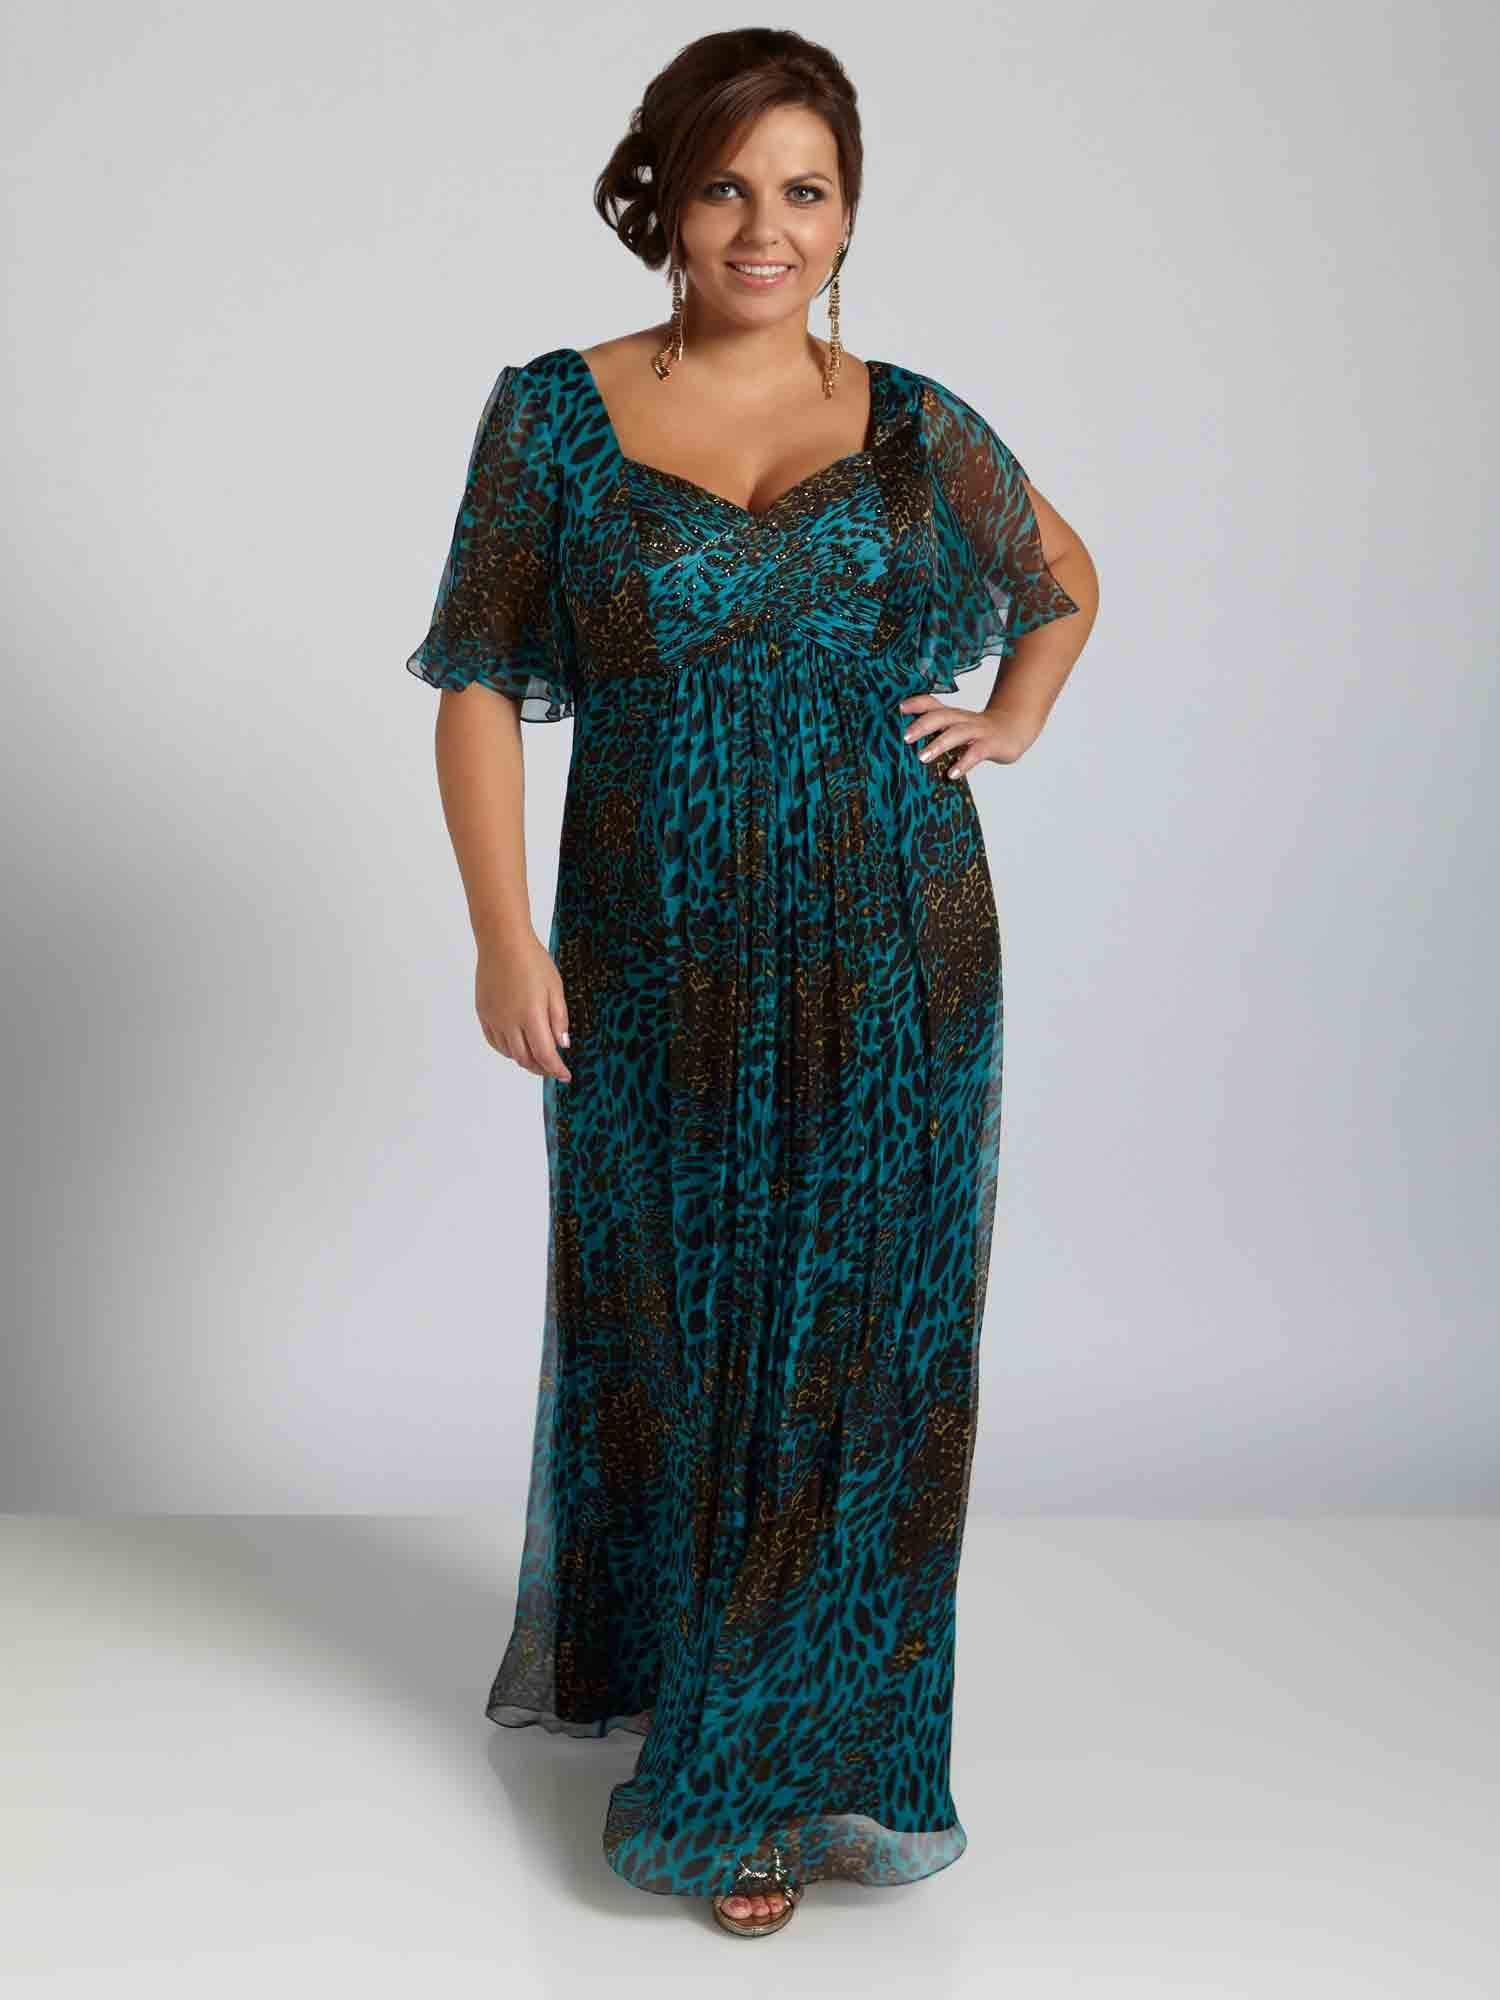 plus size special occasion dresses | Affordable Plus Size ...